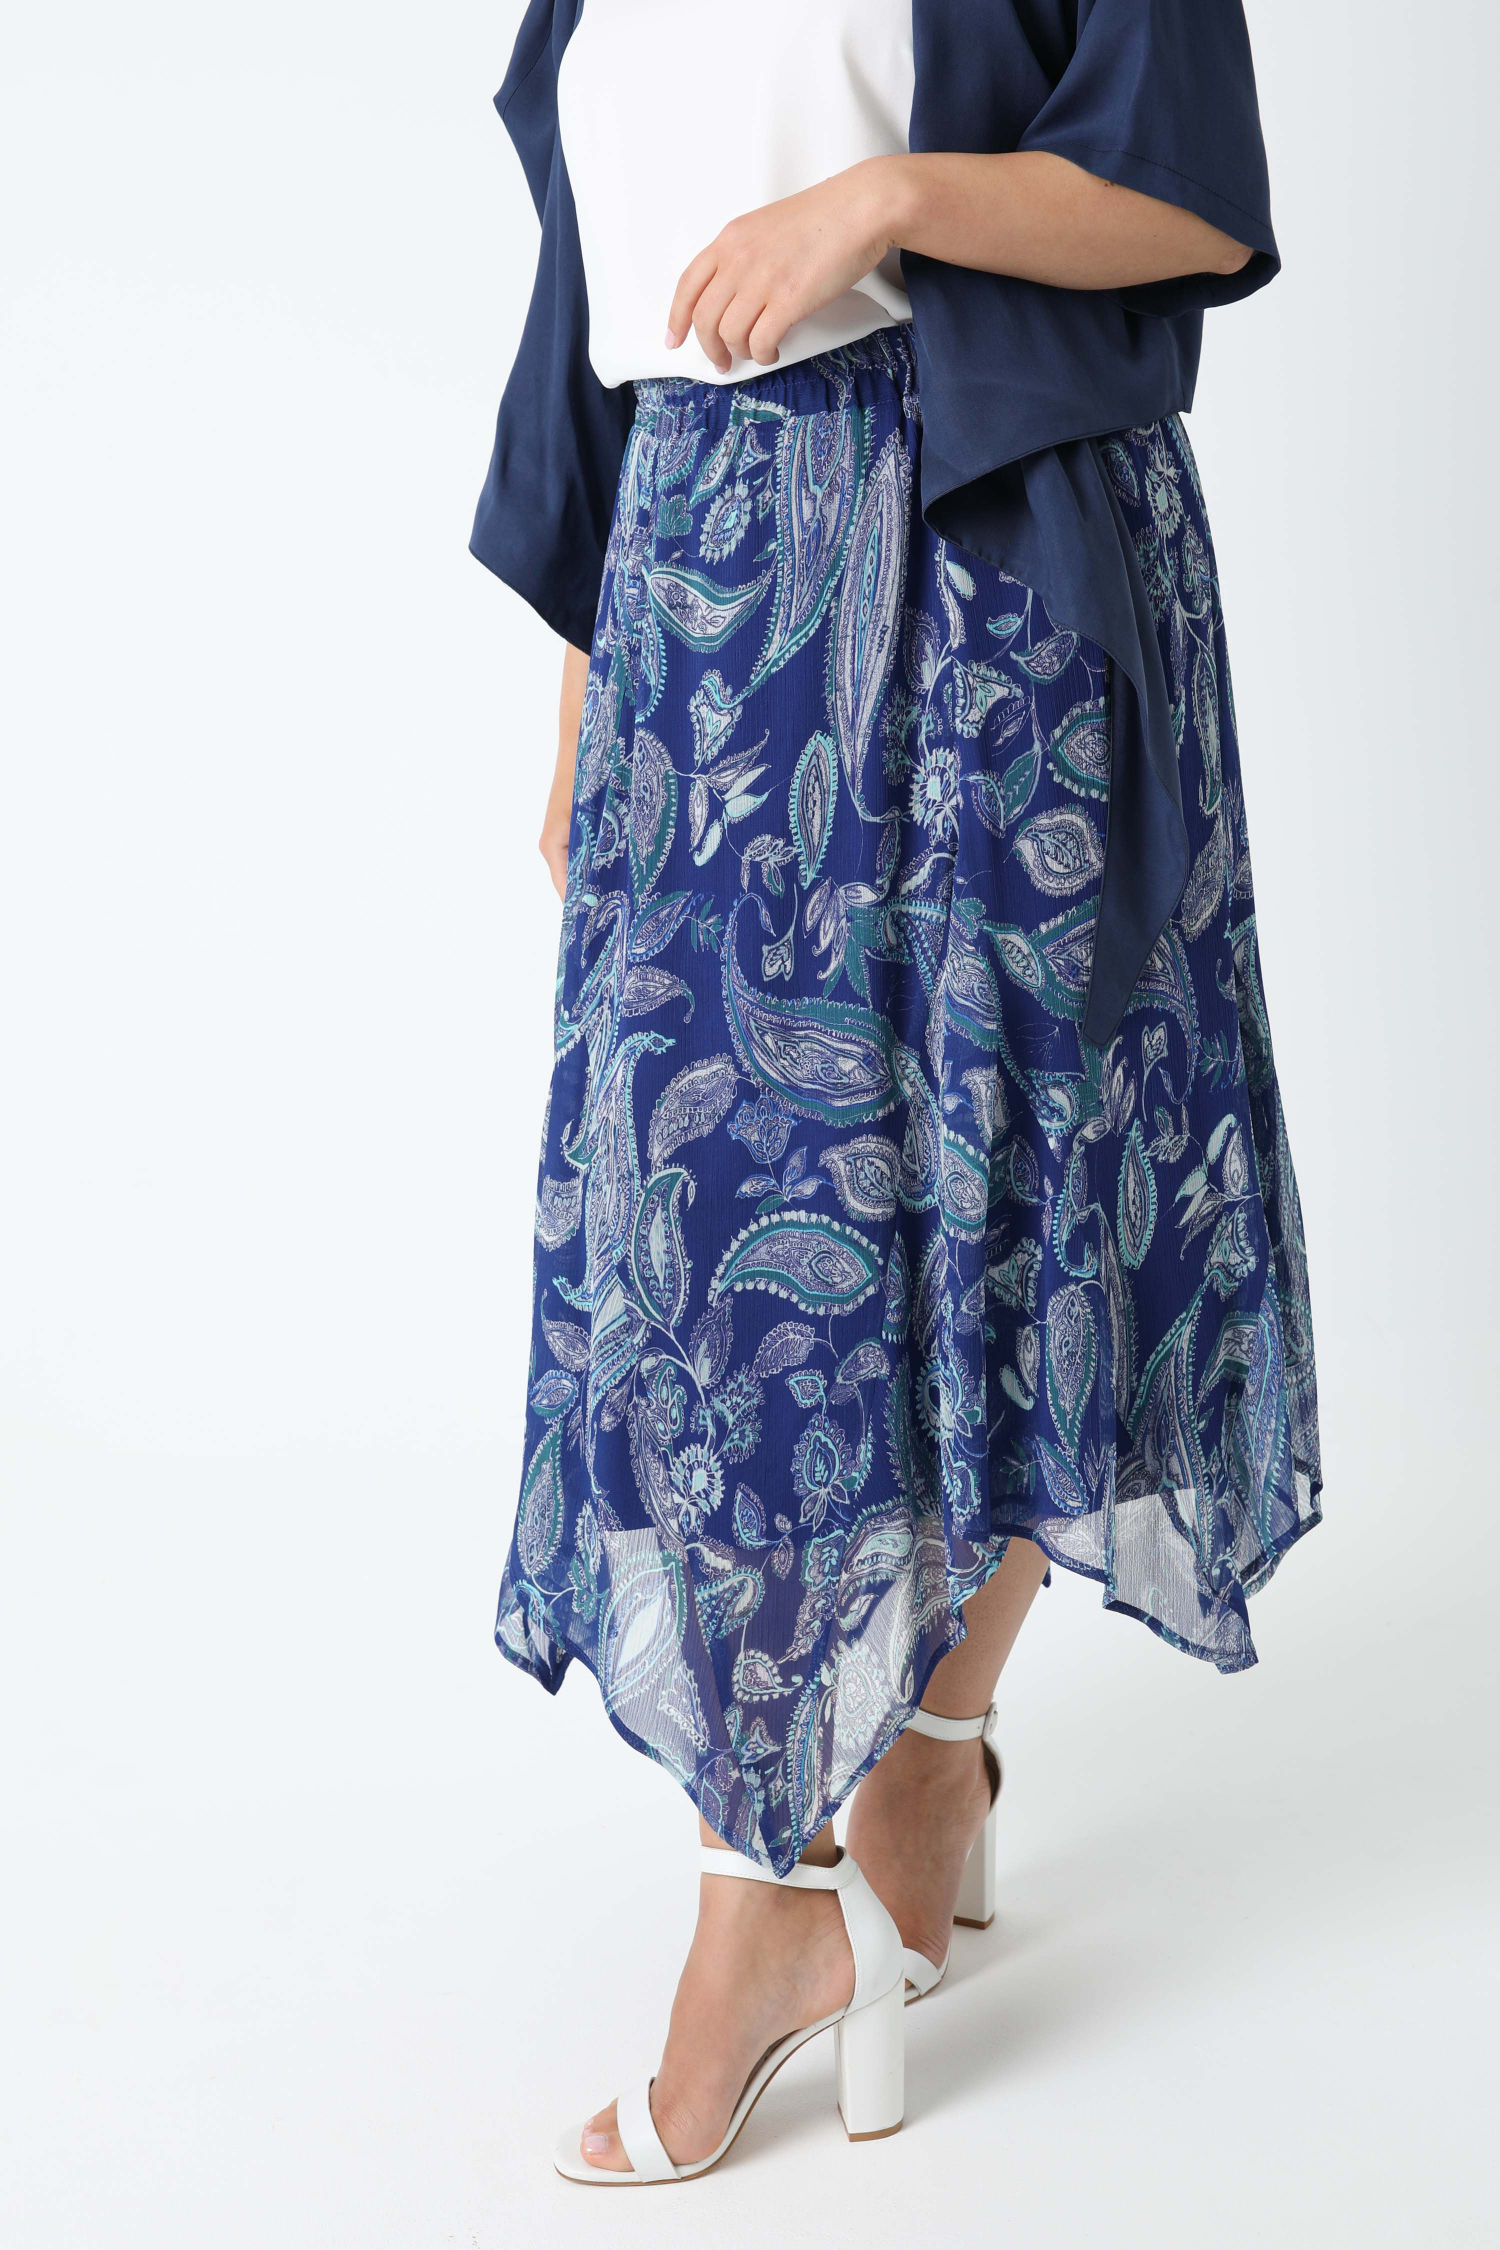 Printed voile skirt with oeko-tex fabric keel (Expedition June 5/10)